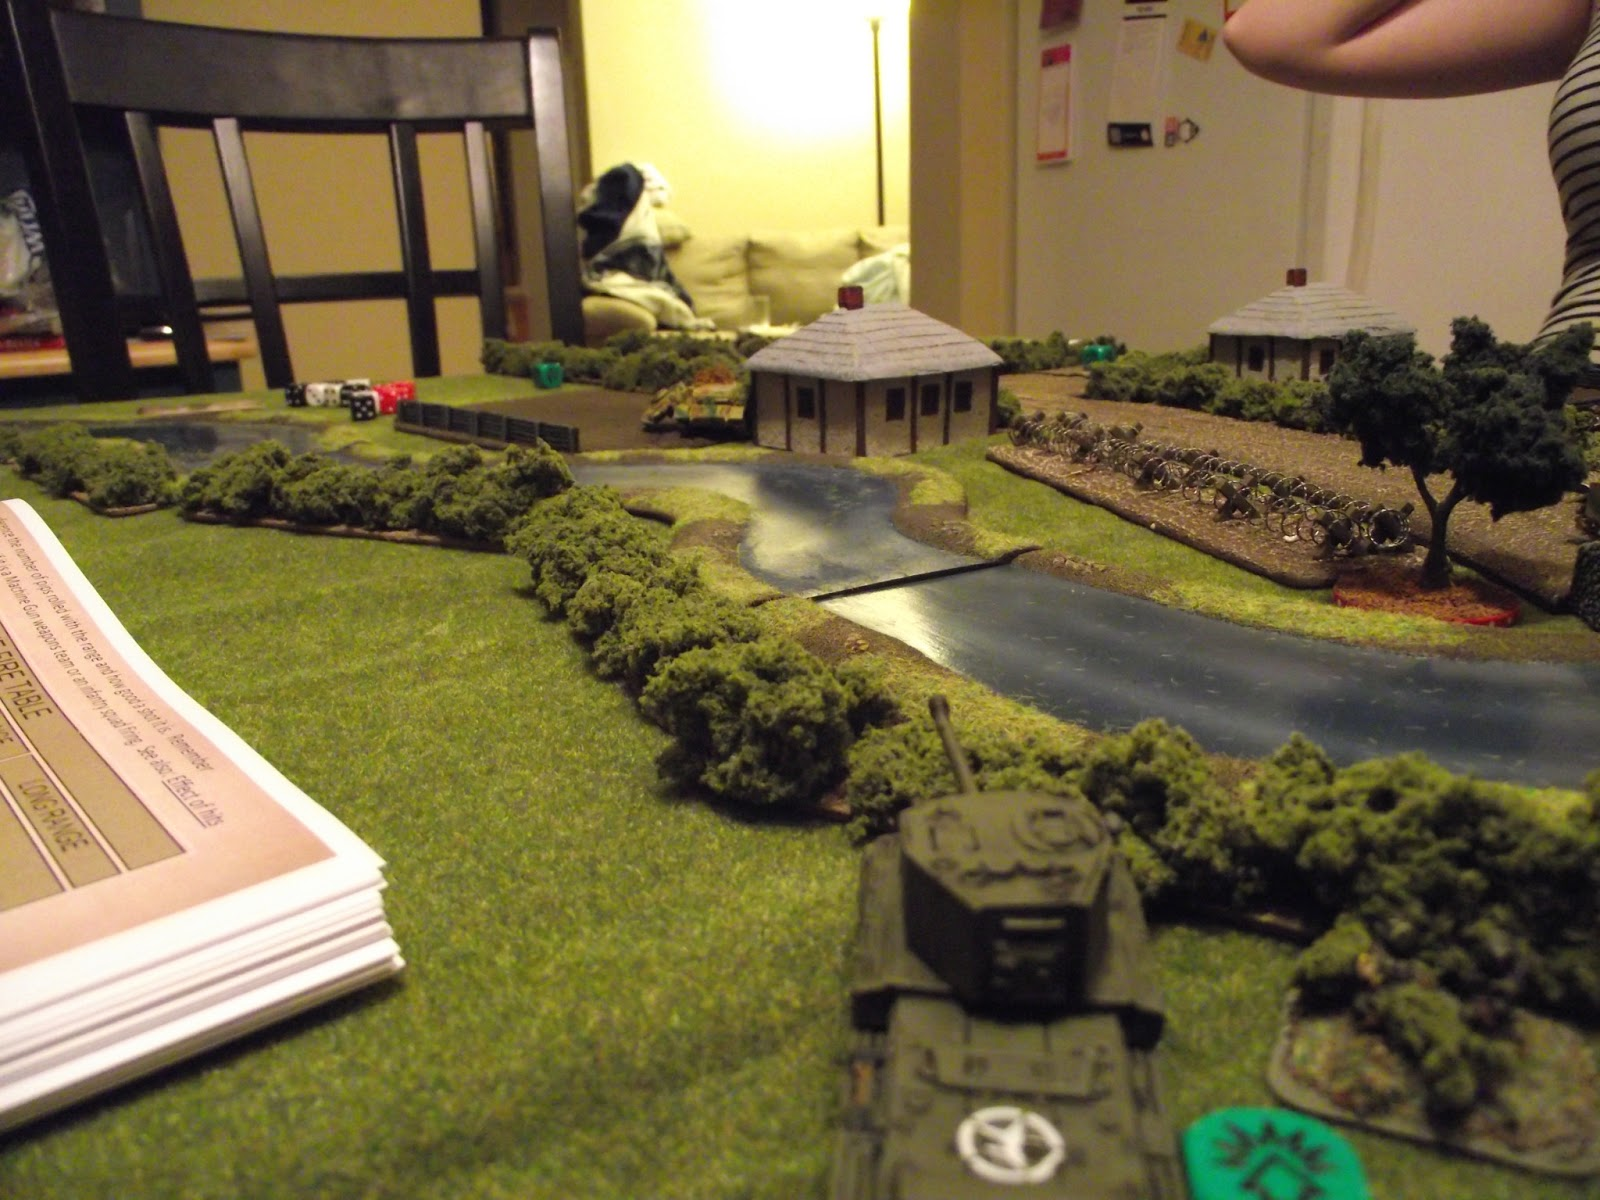 Challenger turns its attention to the second Panzer IV hiding behind the farmhouse.